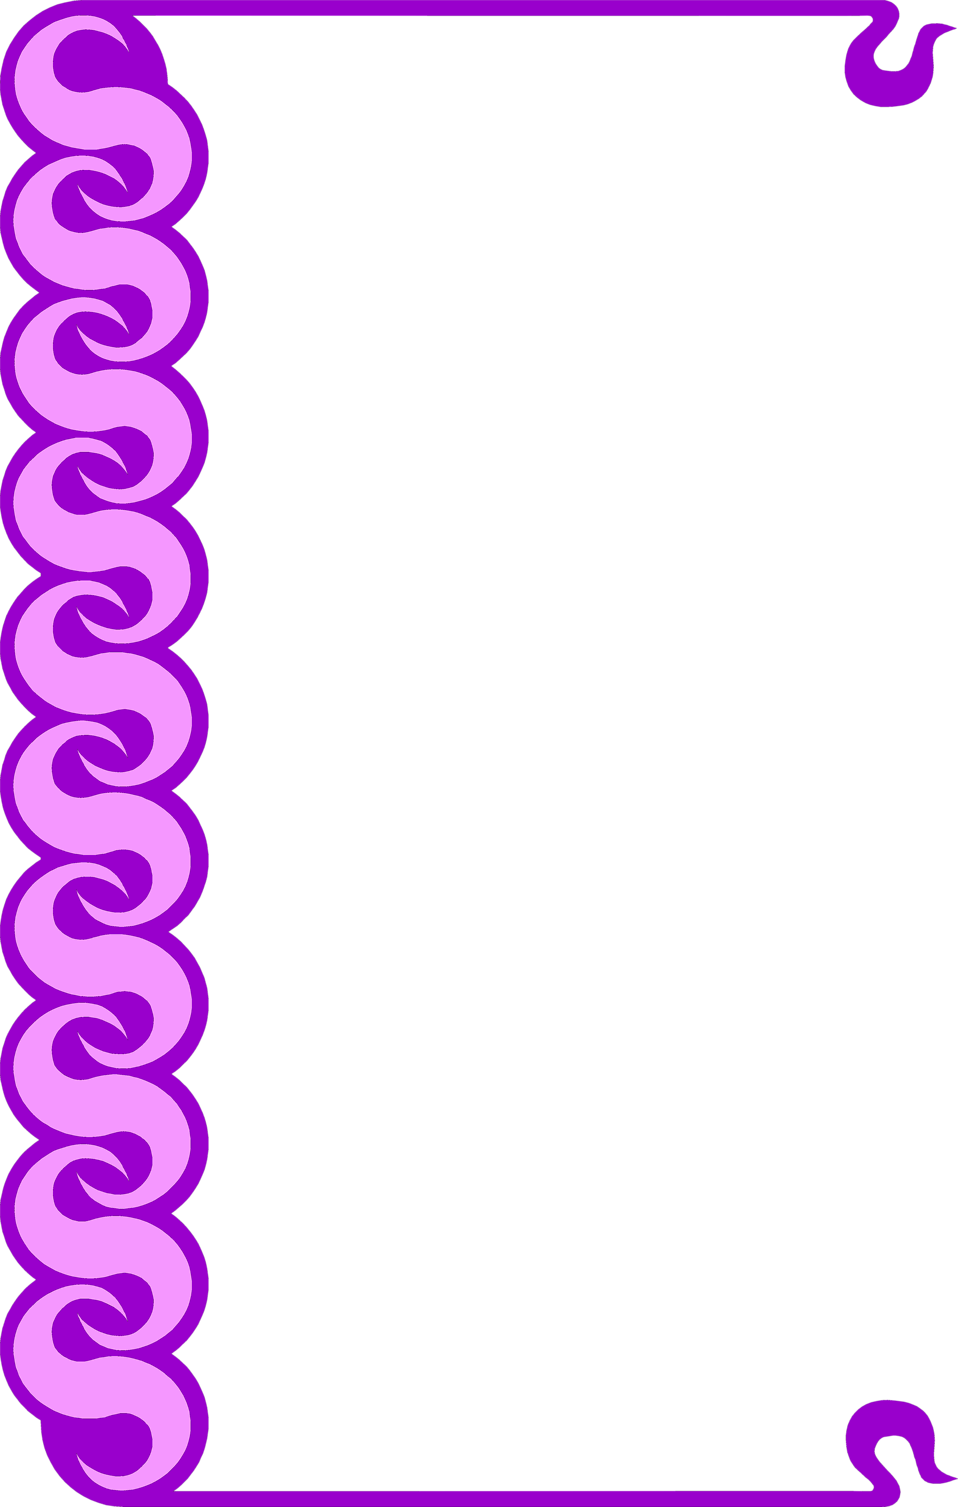 Illustration of a blank frame border with purple swirls : Free Stock Photo